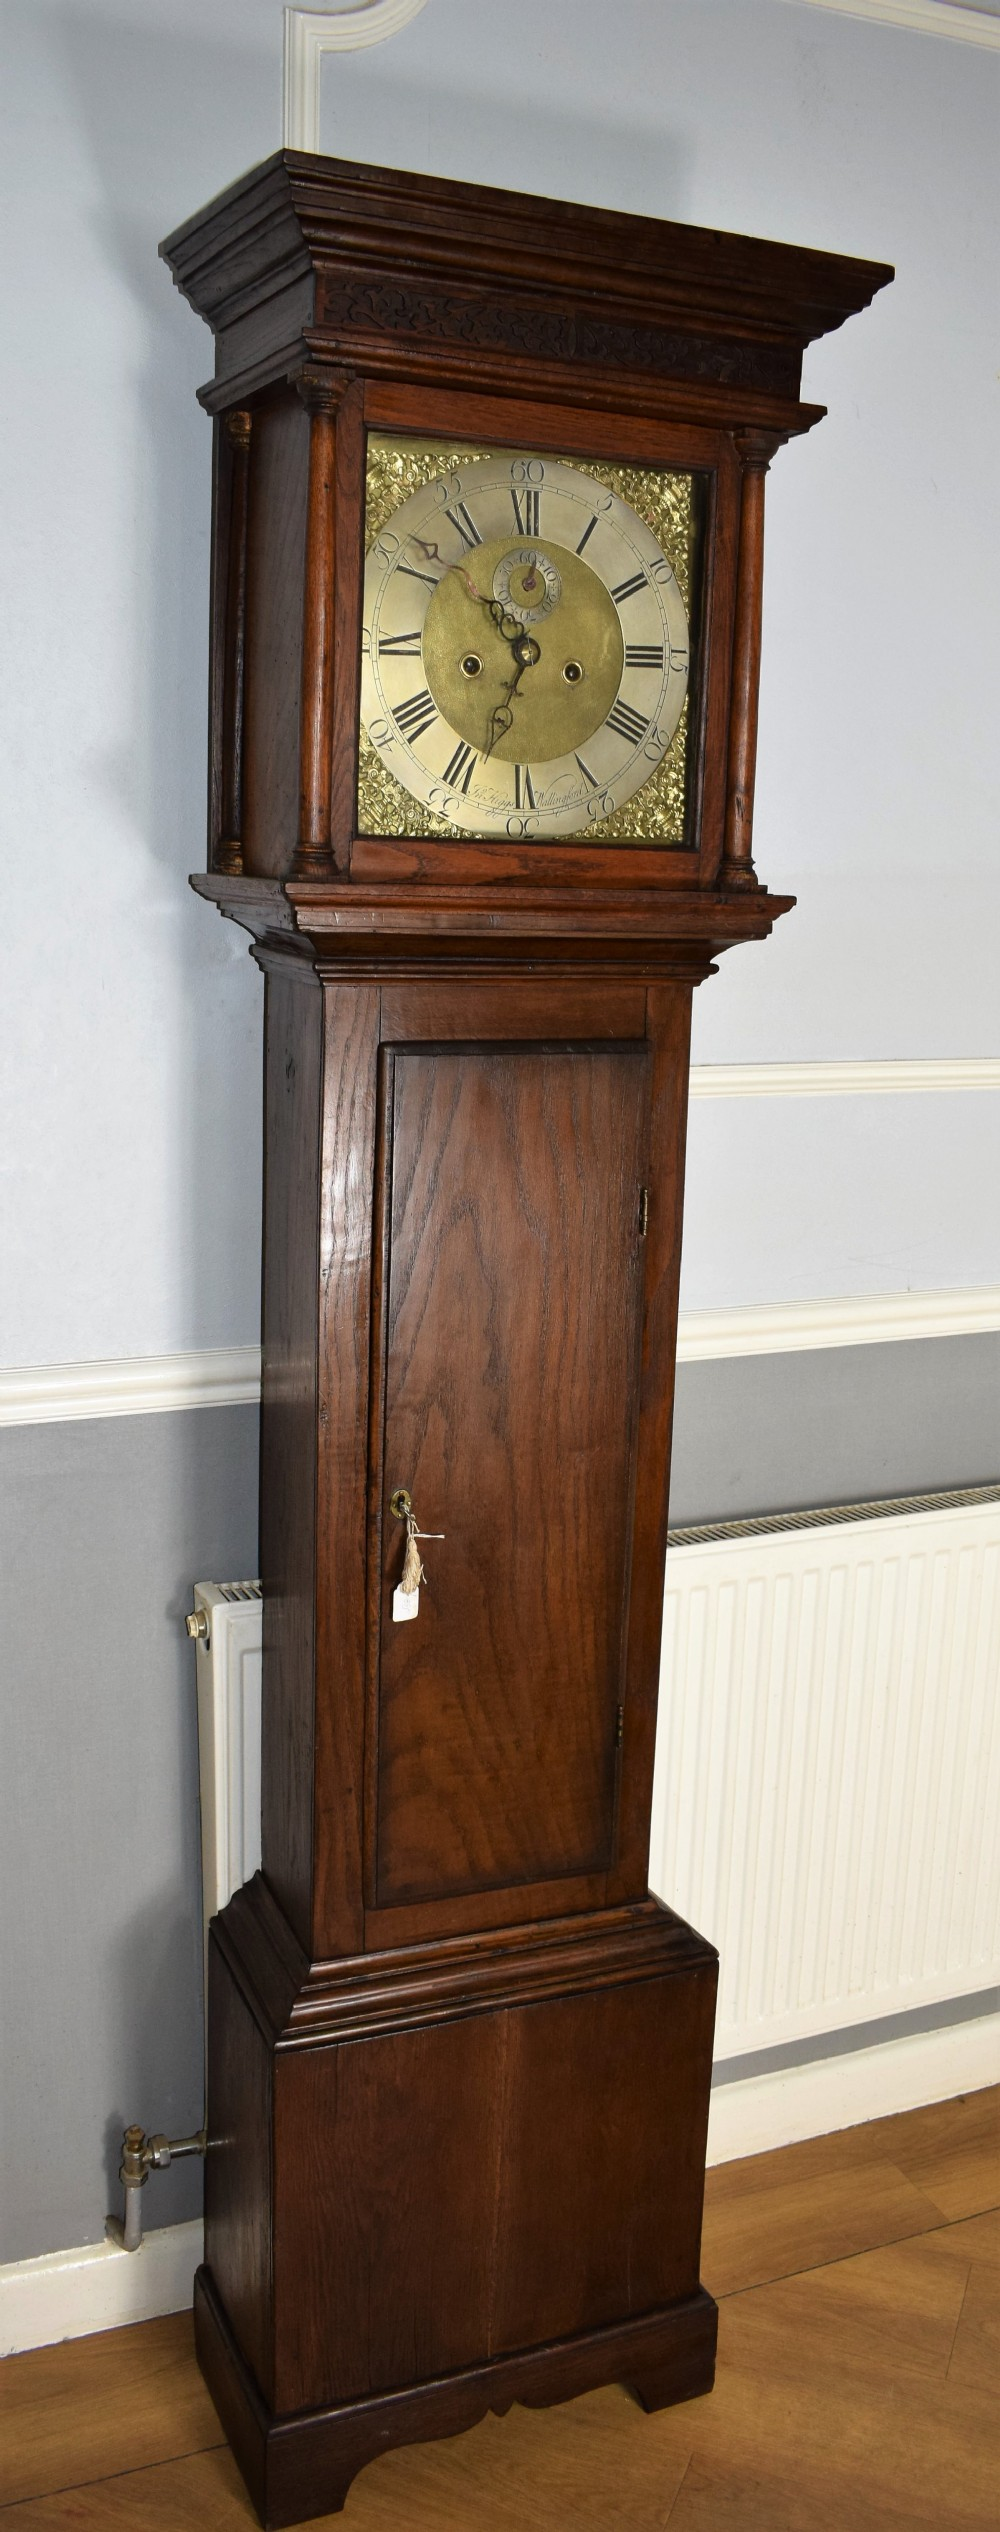 small 76in 8 day bell striking oak grandfather or grandmother longcase clock circa 1780 by john higgs of wallingford